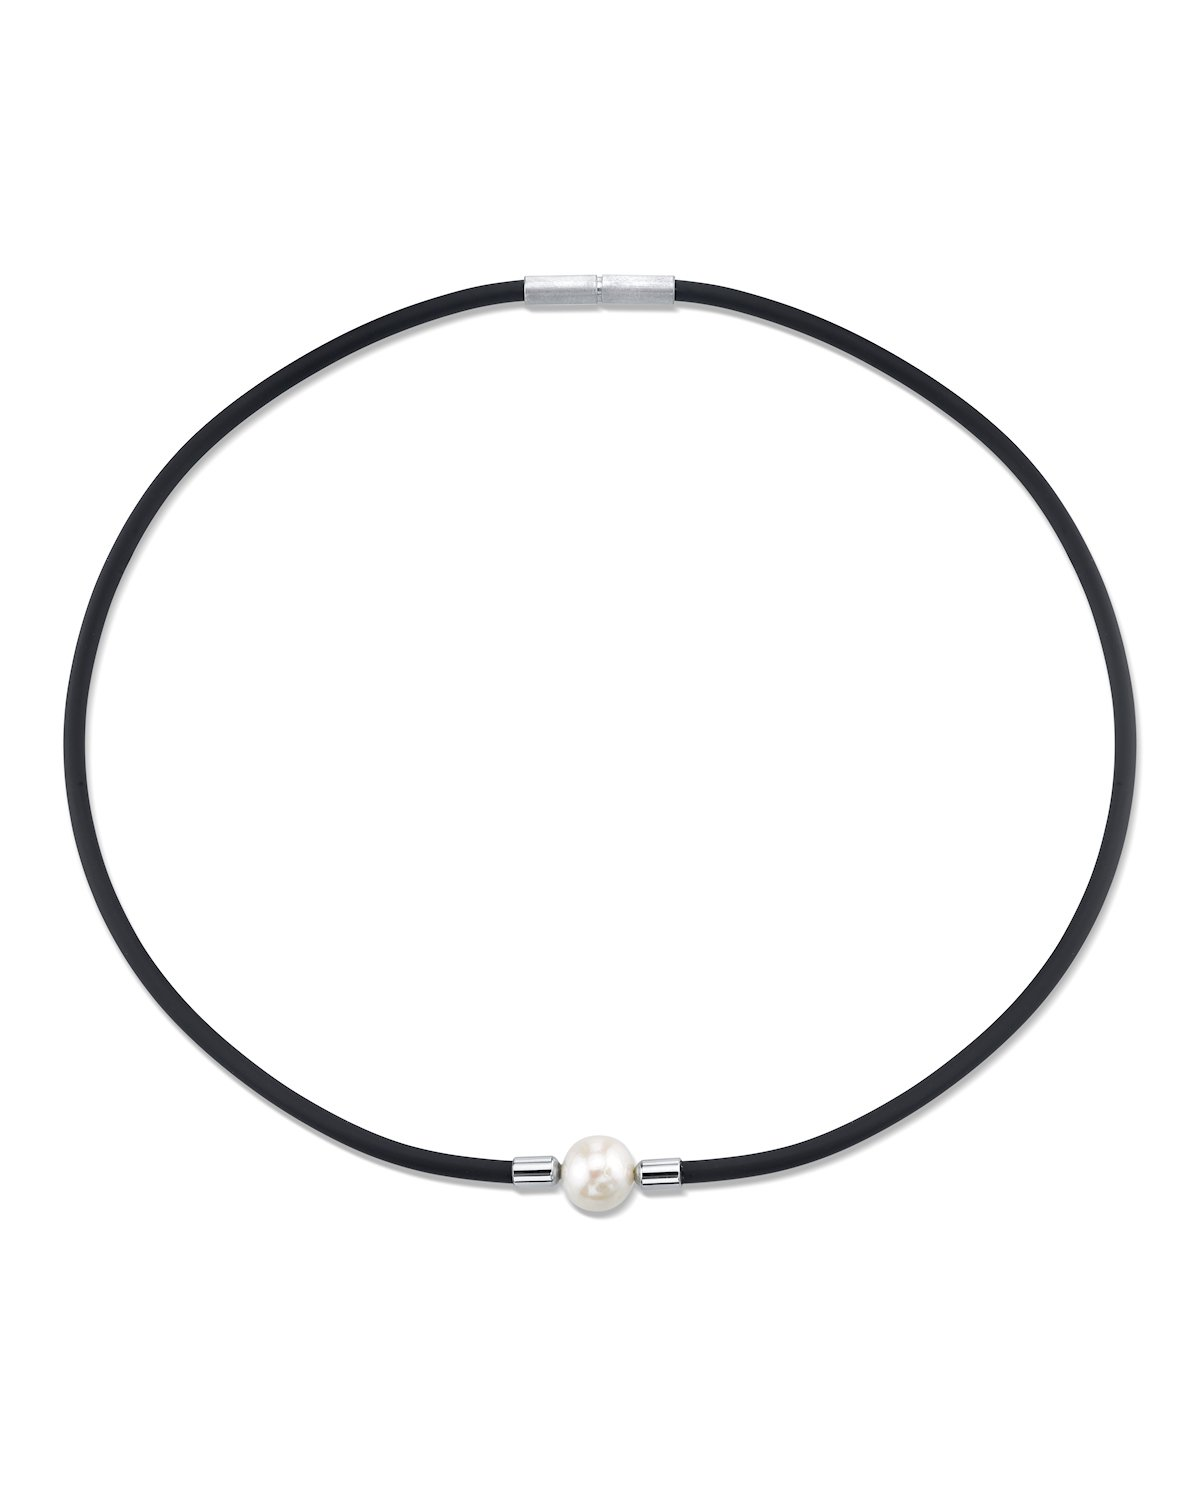 9-10mm Genuine White Freshwater Cultured Pearl & Rubber Katie Necklace for Women